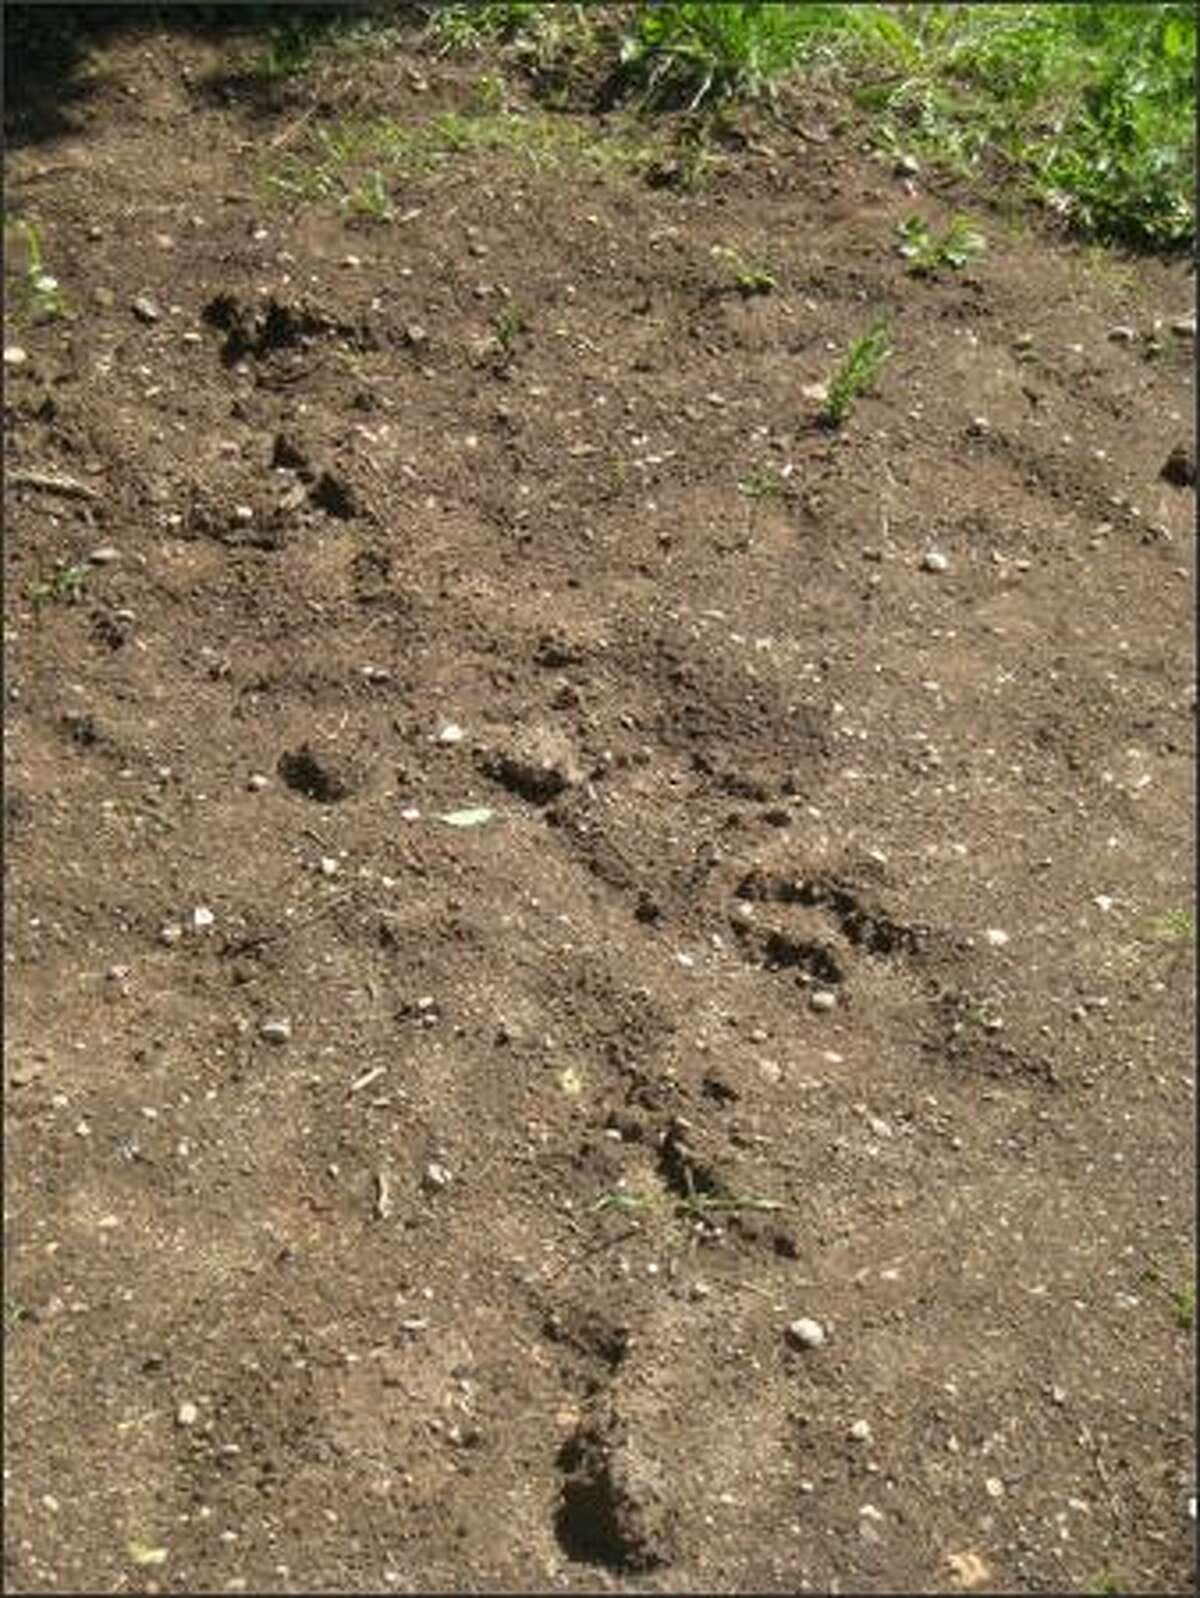 Suspected animal tracks, possibly made by a bear, next to the Ferdinand P-patch on Beacon Hill.